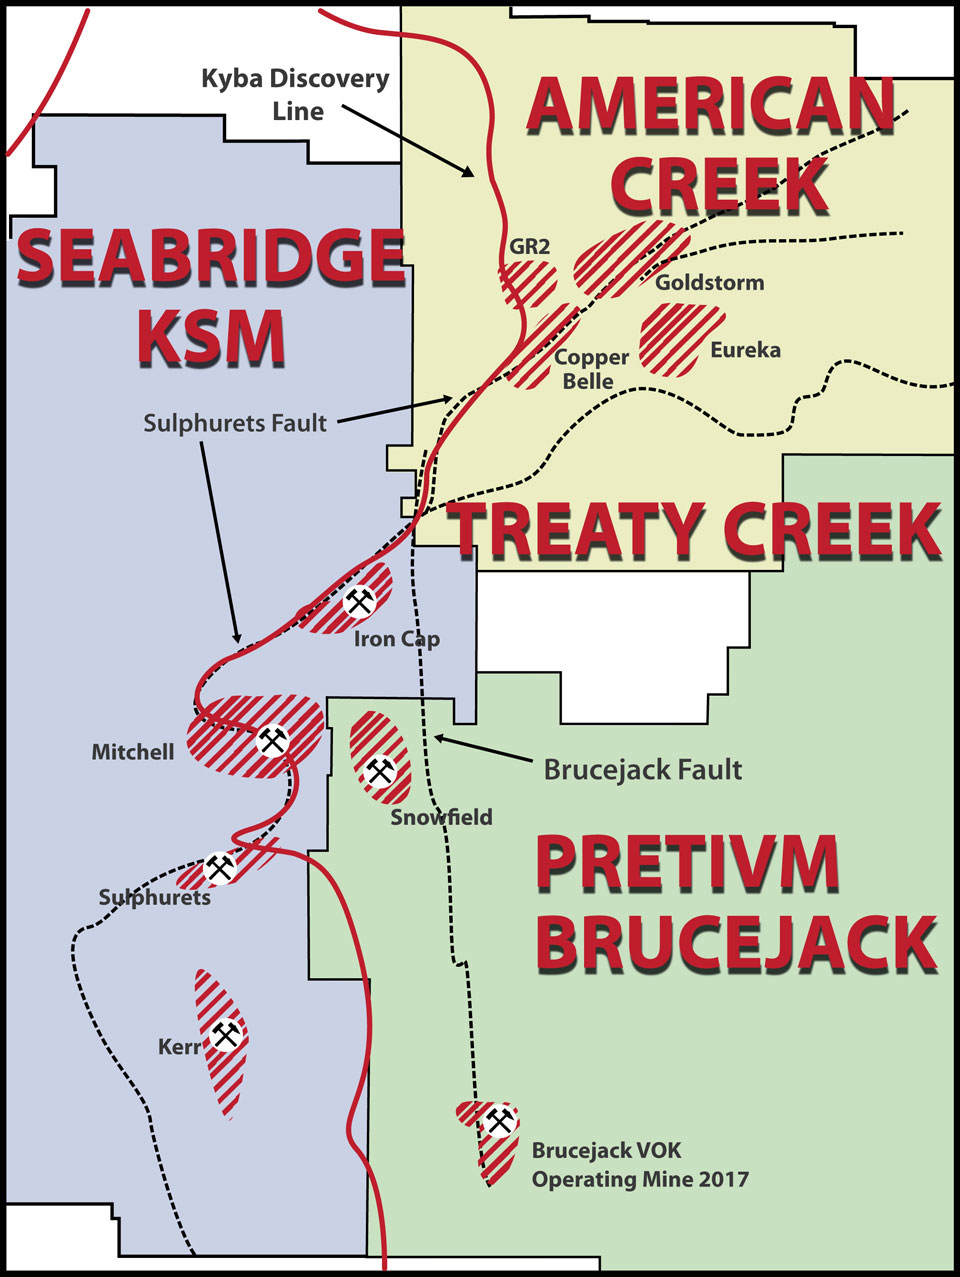 treatycreek map